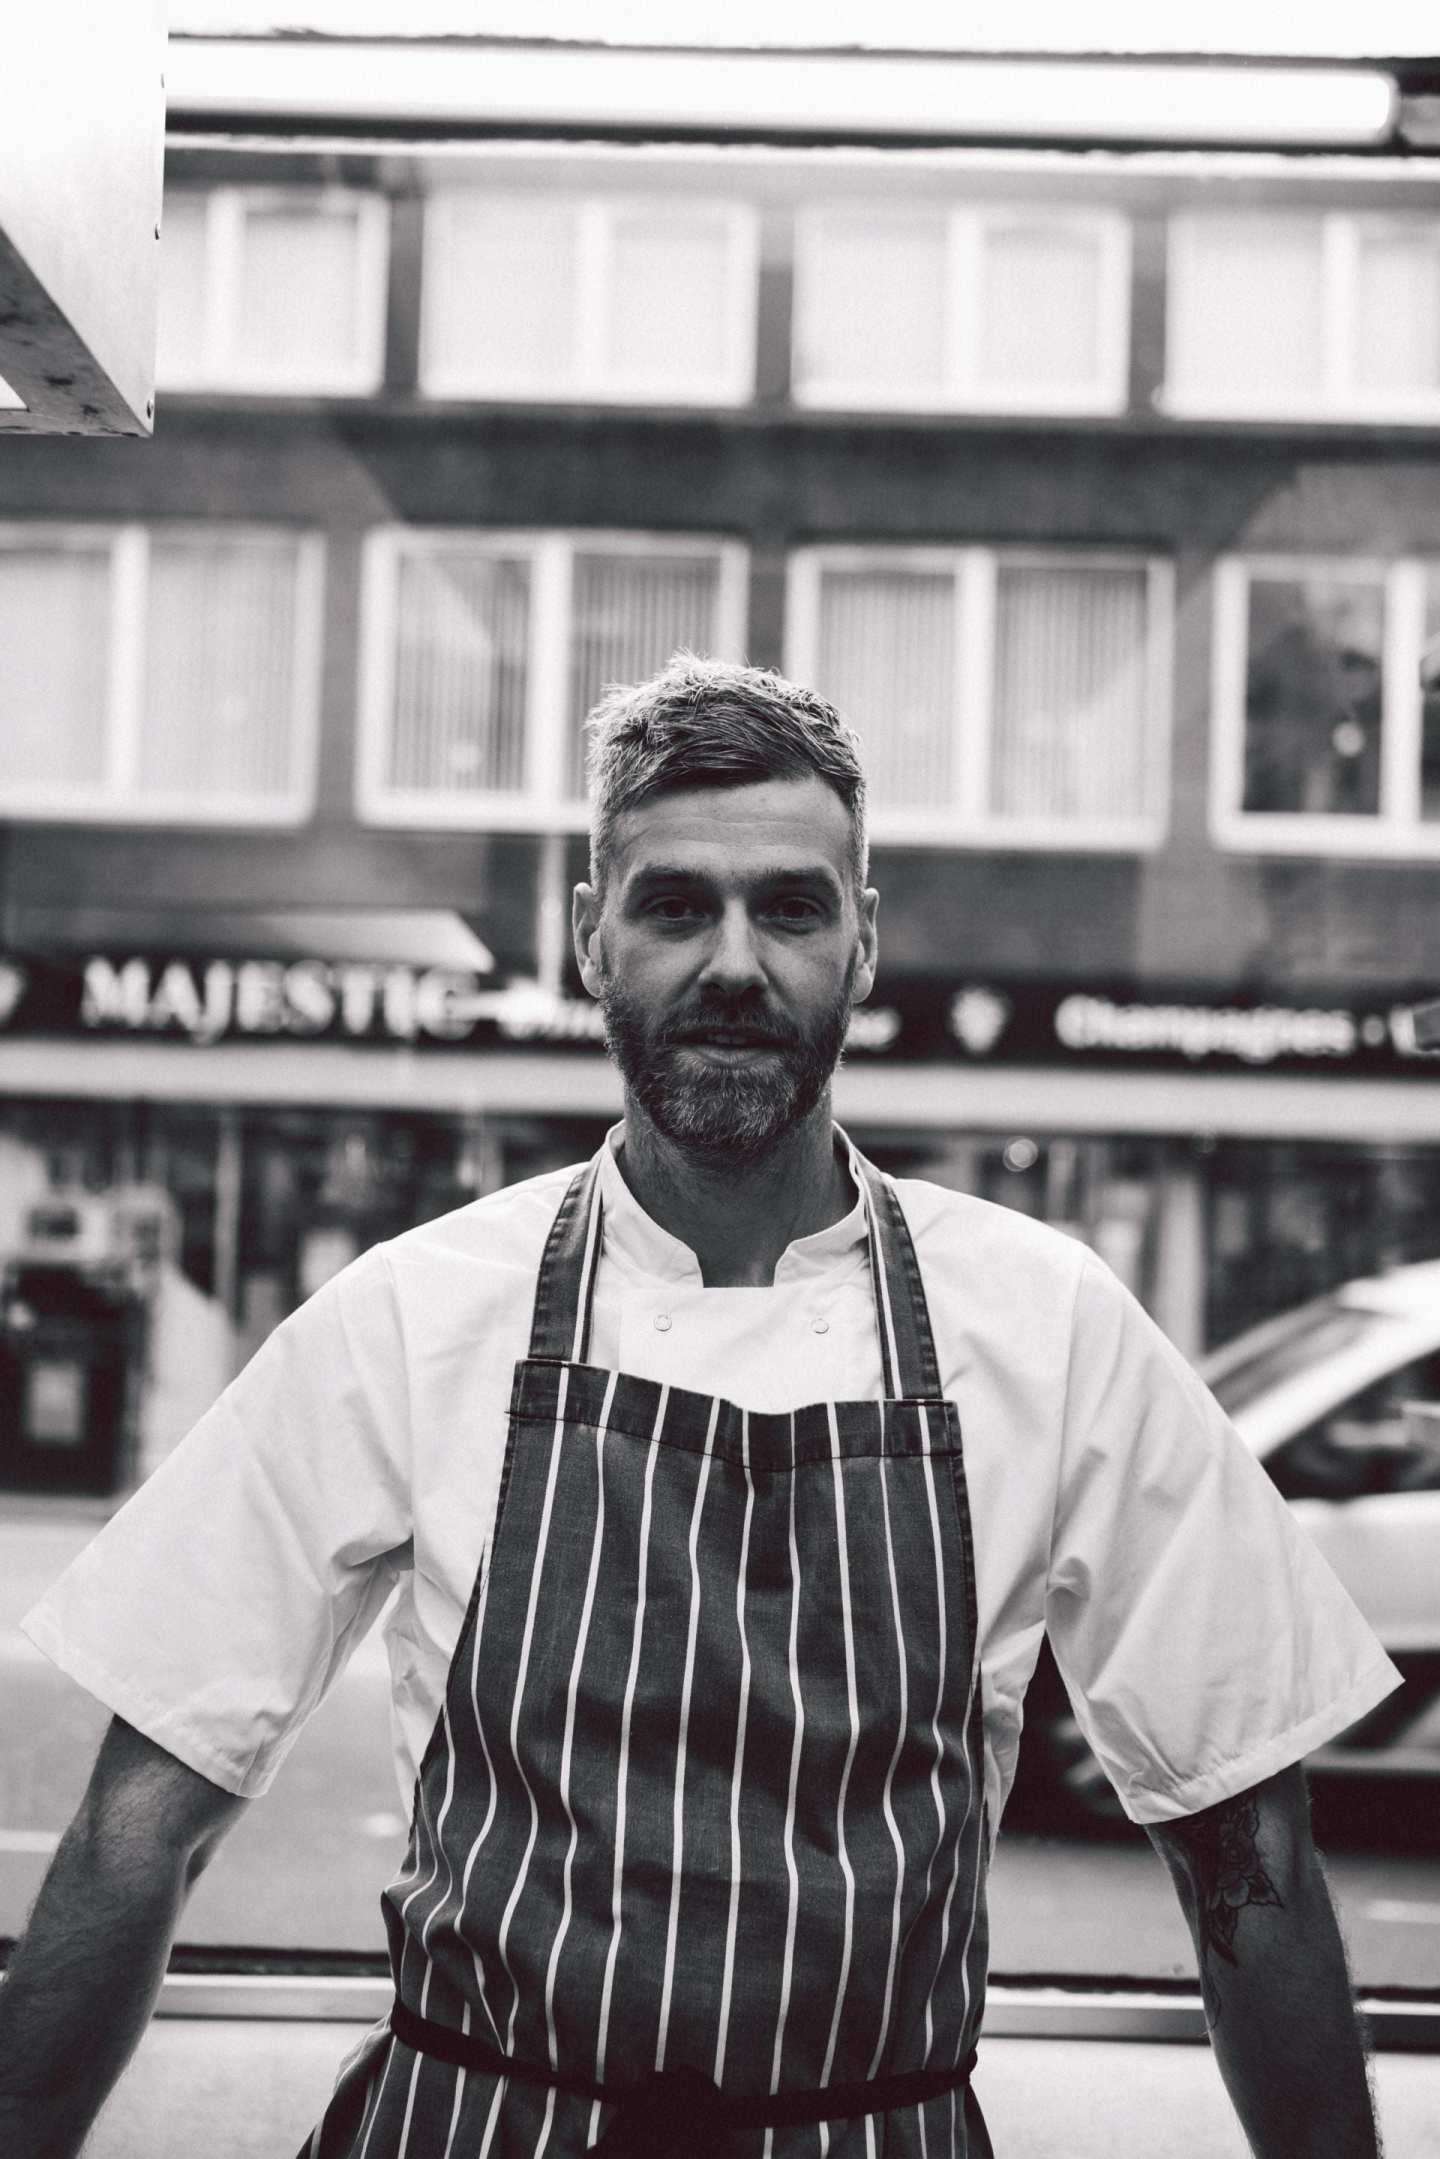 88 west end Glasgow chef